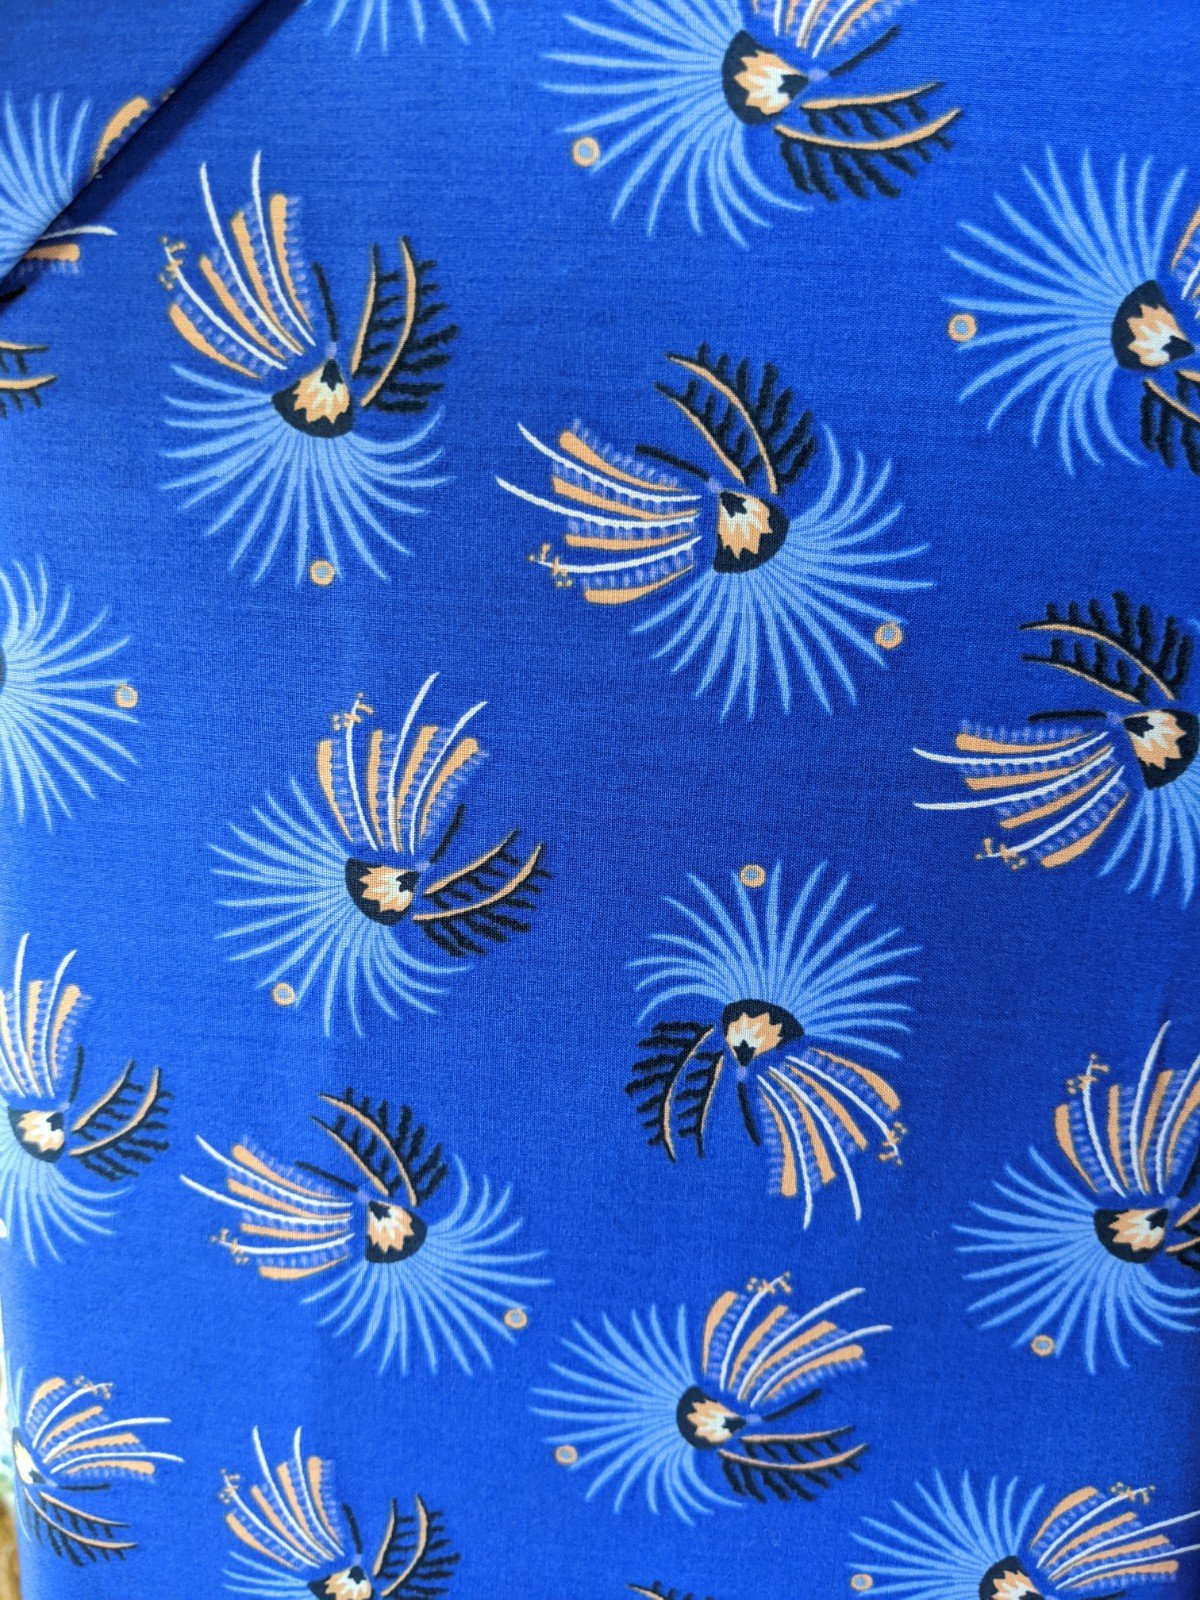 Liberty of London Cotton Lawn - Blue Dandelion